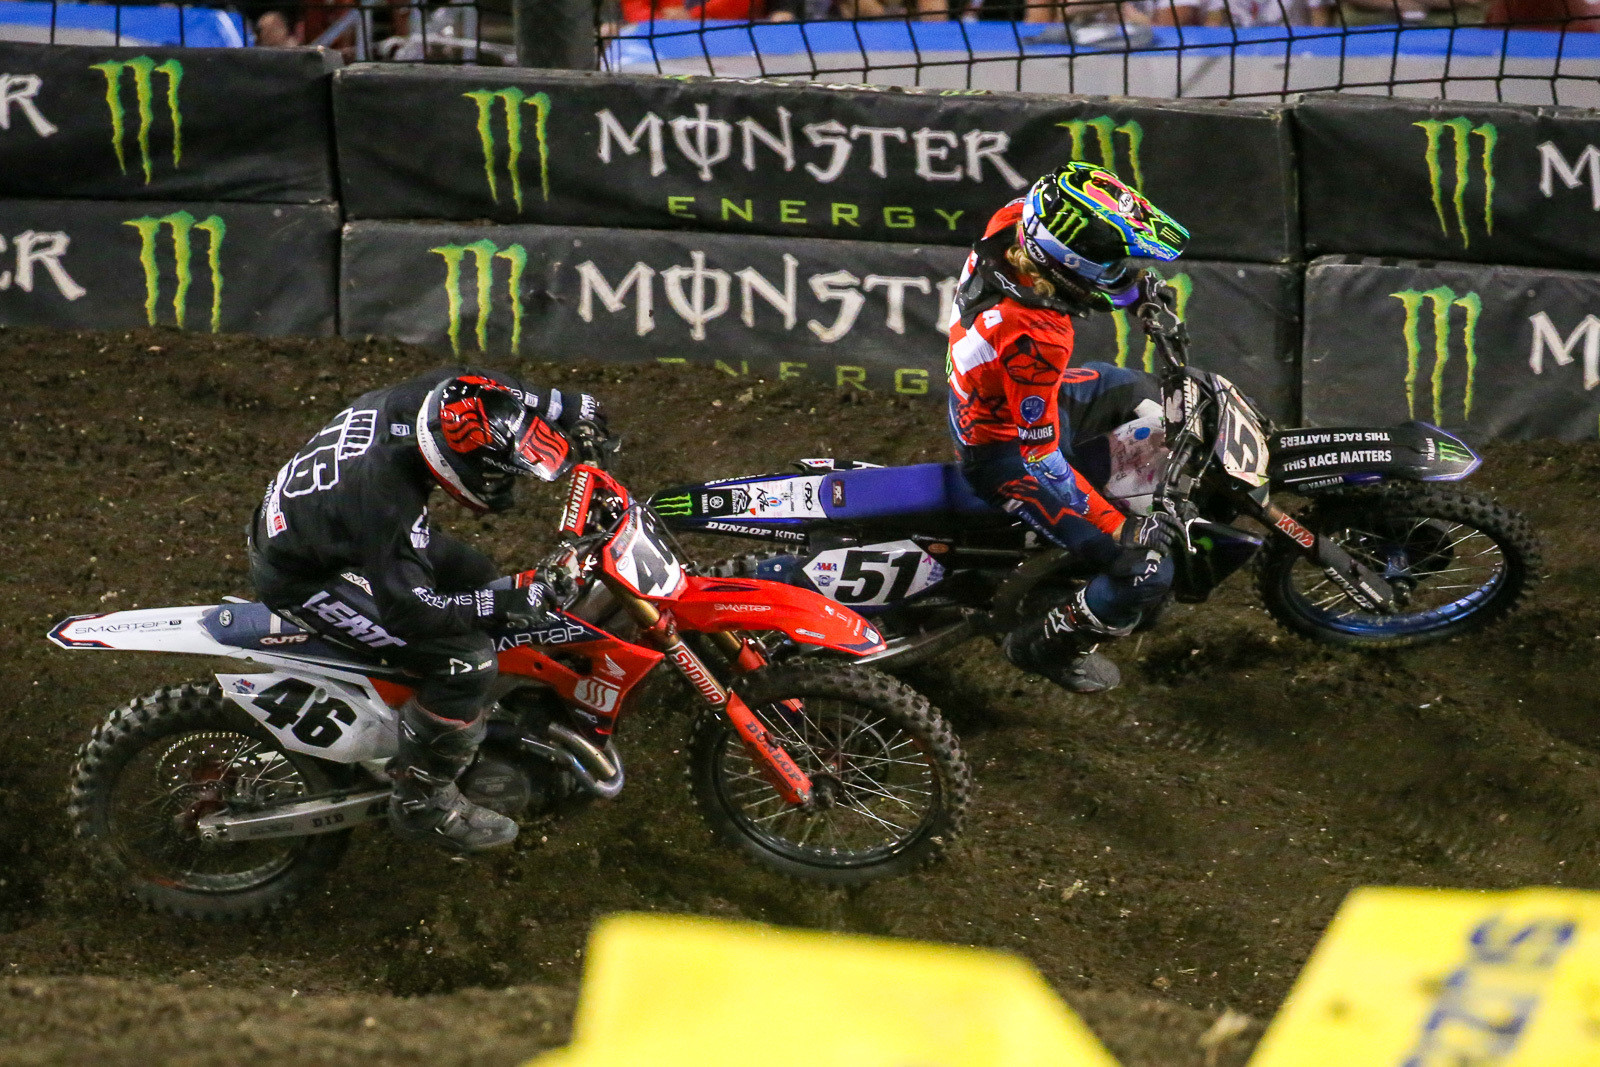 Justin Barcia fending off Justin Hill in the final corner.